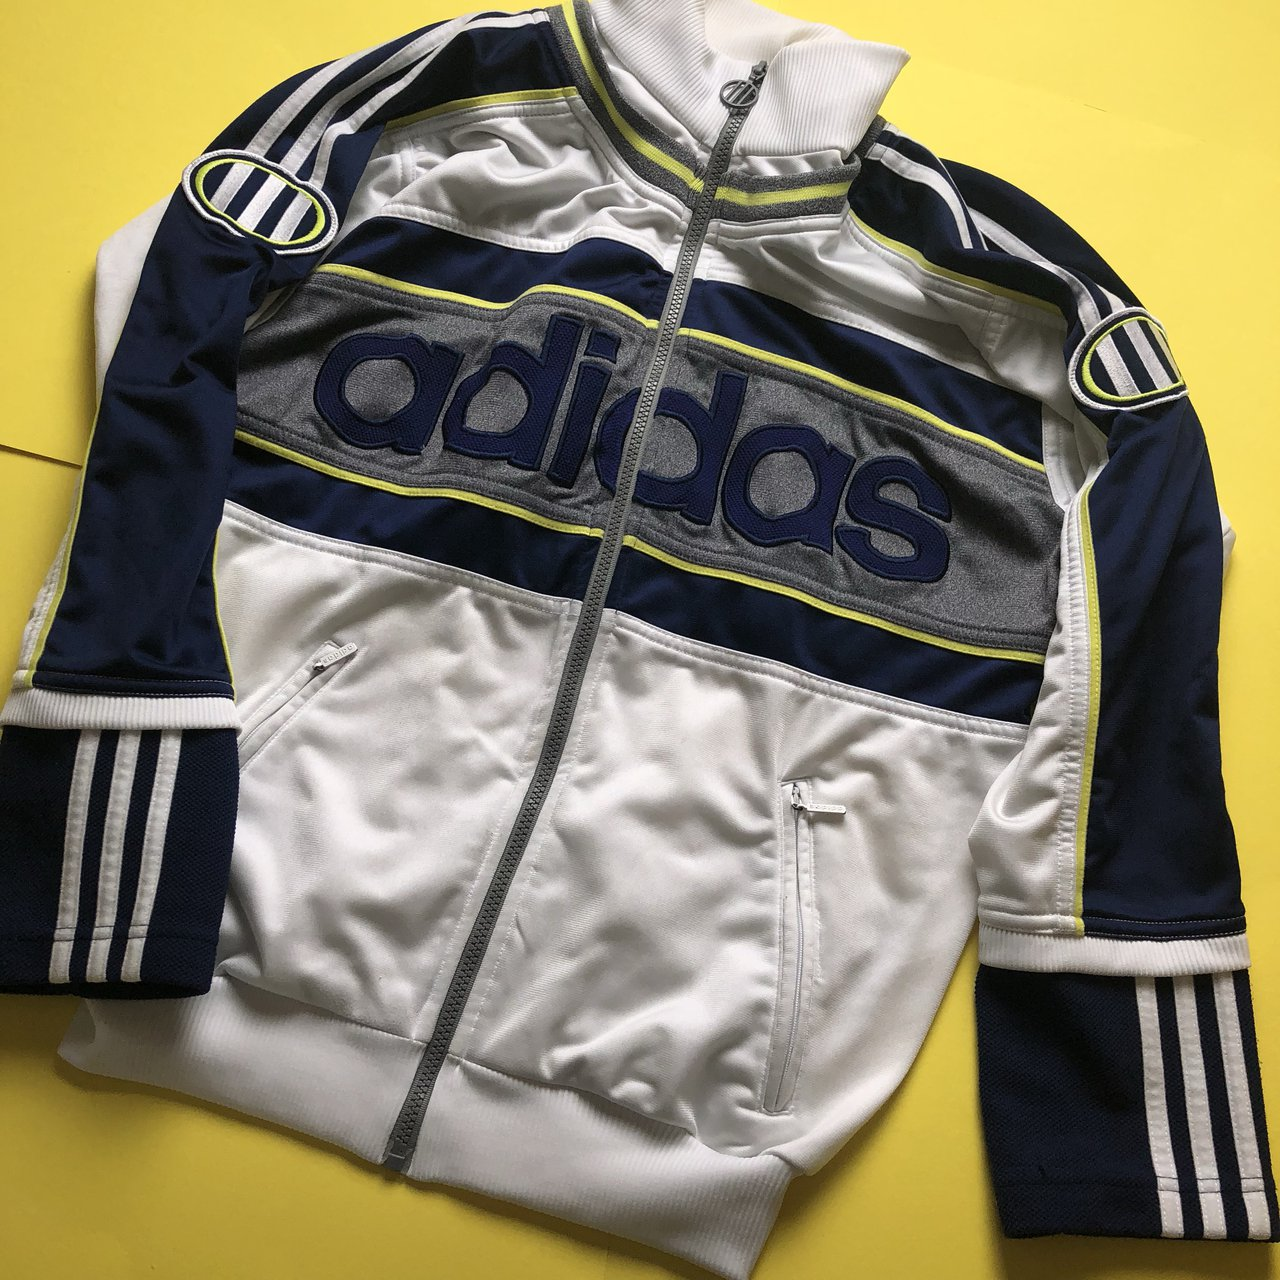 Vintage Adidas tracksuit top - amazing spell out Adidas - - - Depop 5ec8ca5f0e